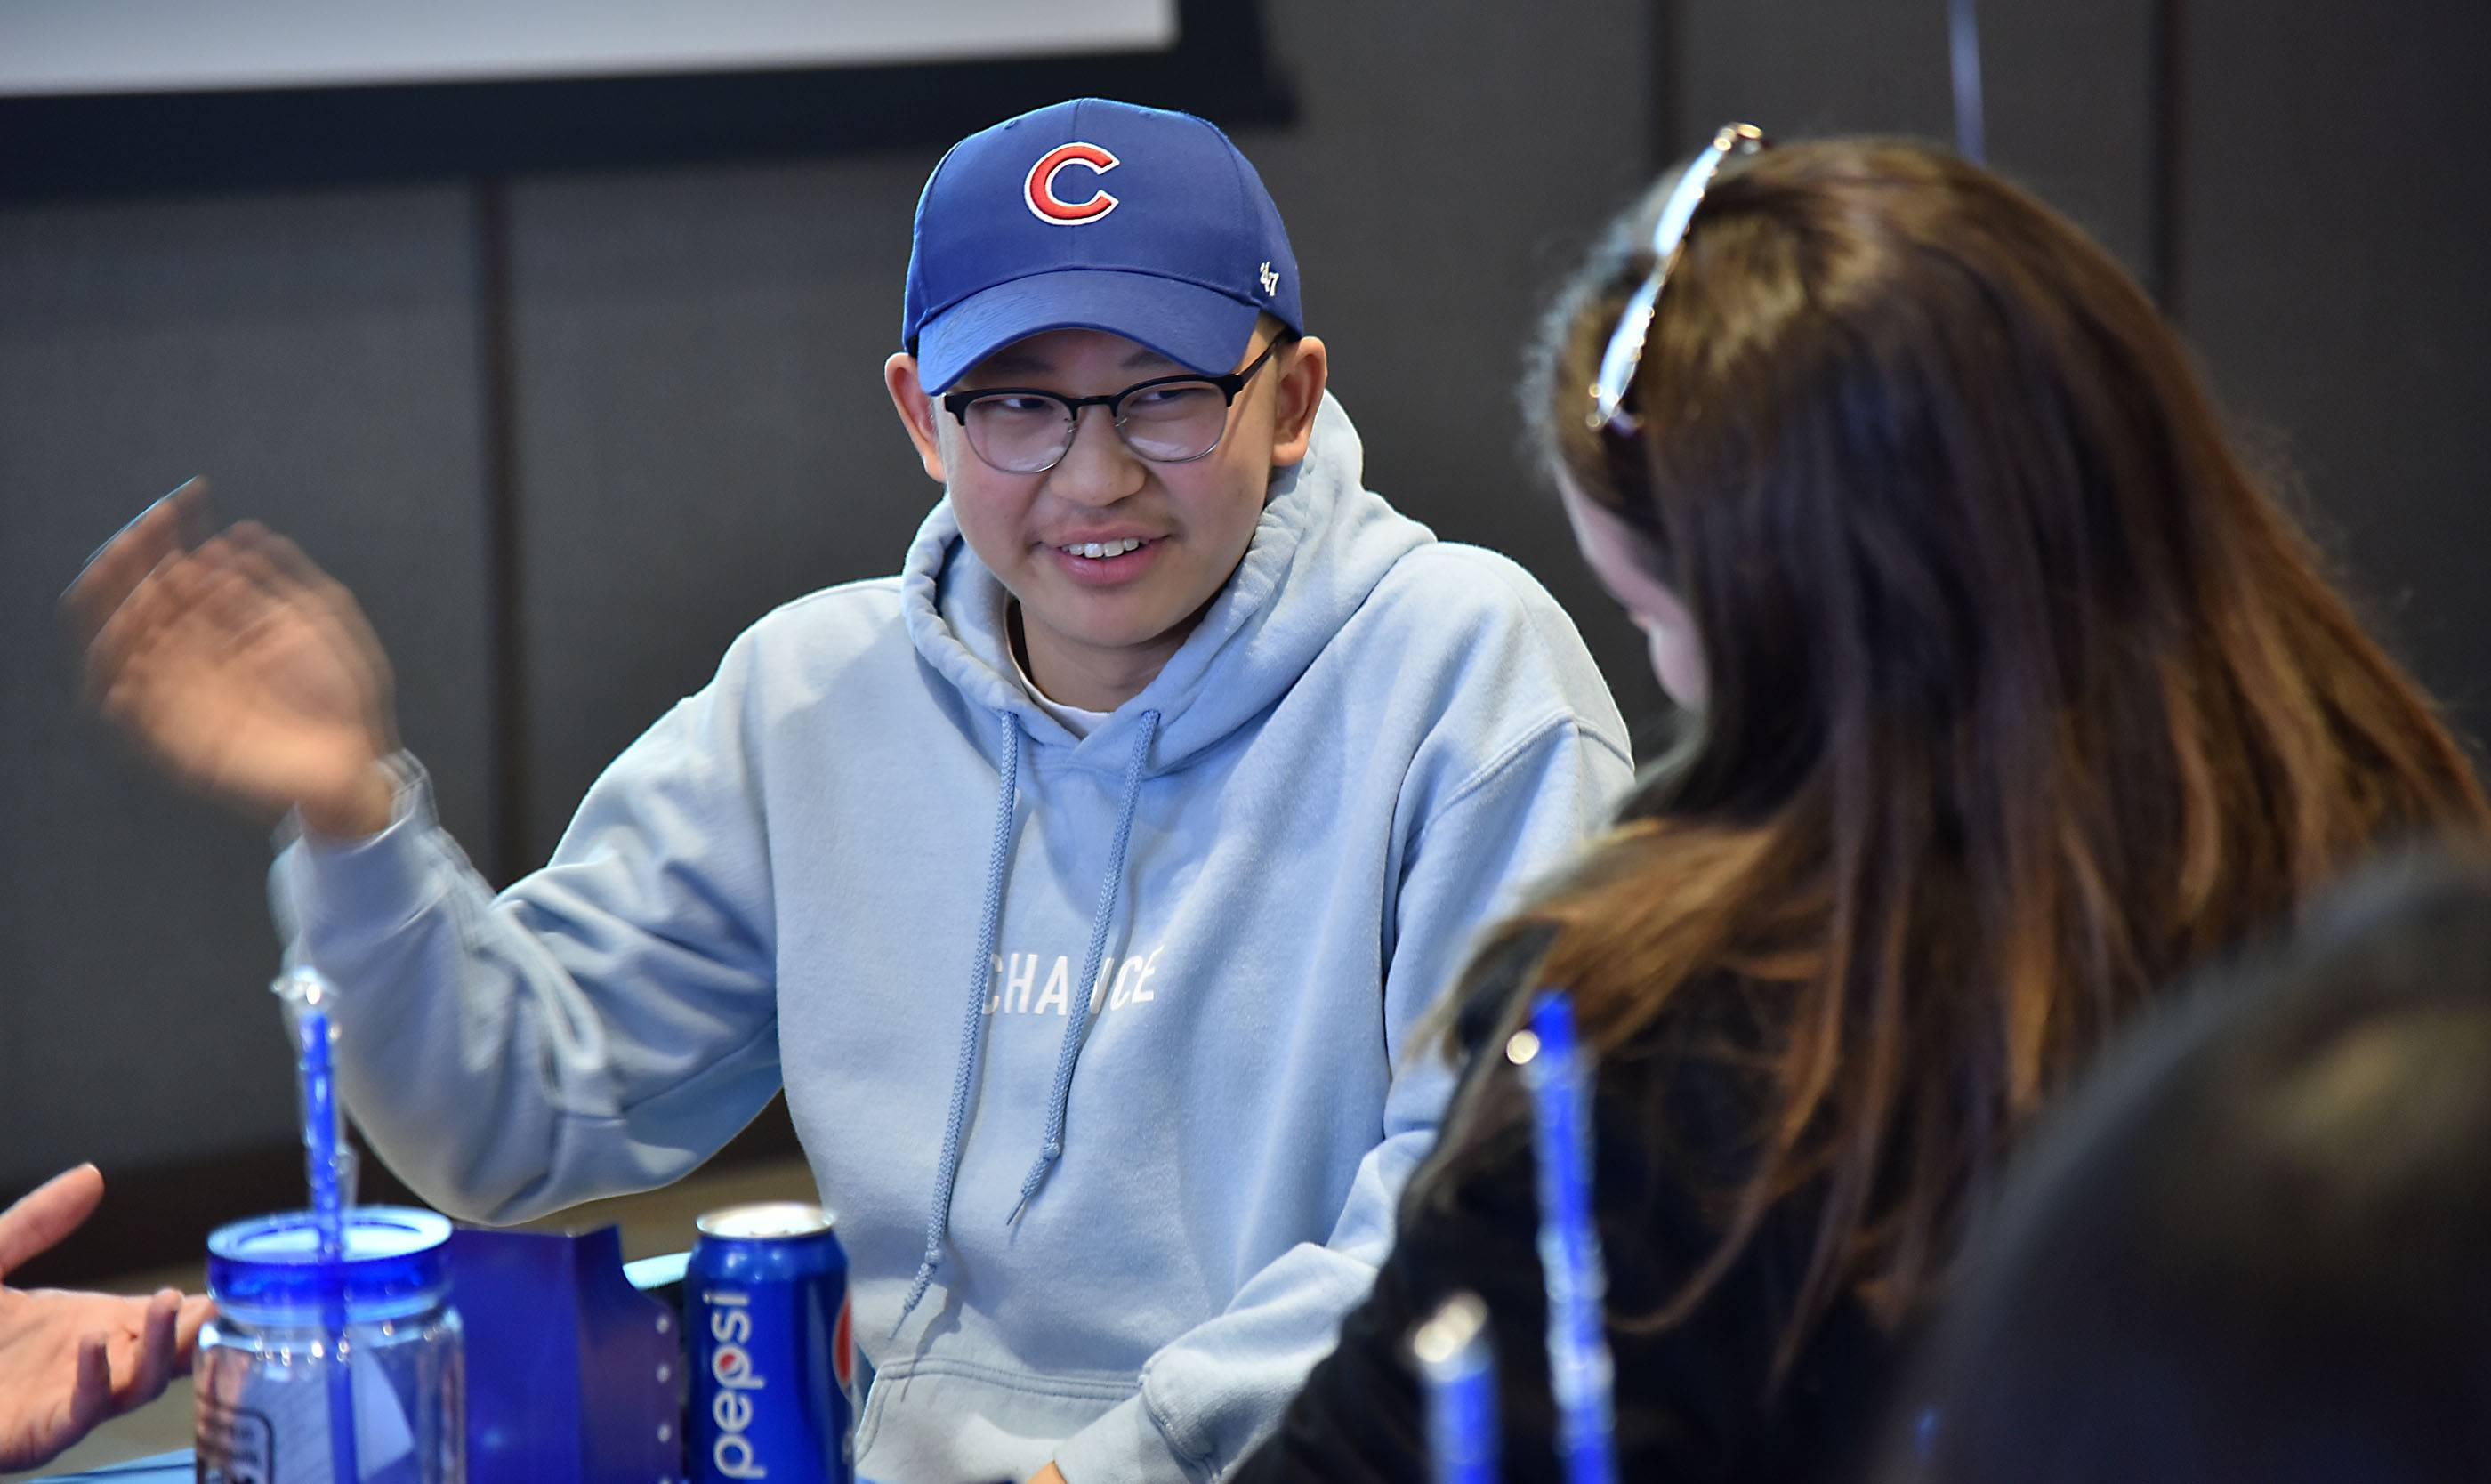 Zachary Lum, 17, of Sleepy Hollow talks with his friend, Tori Redmond, a Jacobs High School student, Wednesday at Wrigley Field. Lum is one of four patients at Advocate Children's Hospital in Park Ridge, who will bring their families and a friend on an all-expenses-paid trip to see the Chicago Cubs in spring training in Arizona.